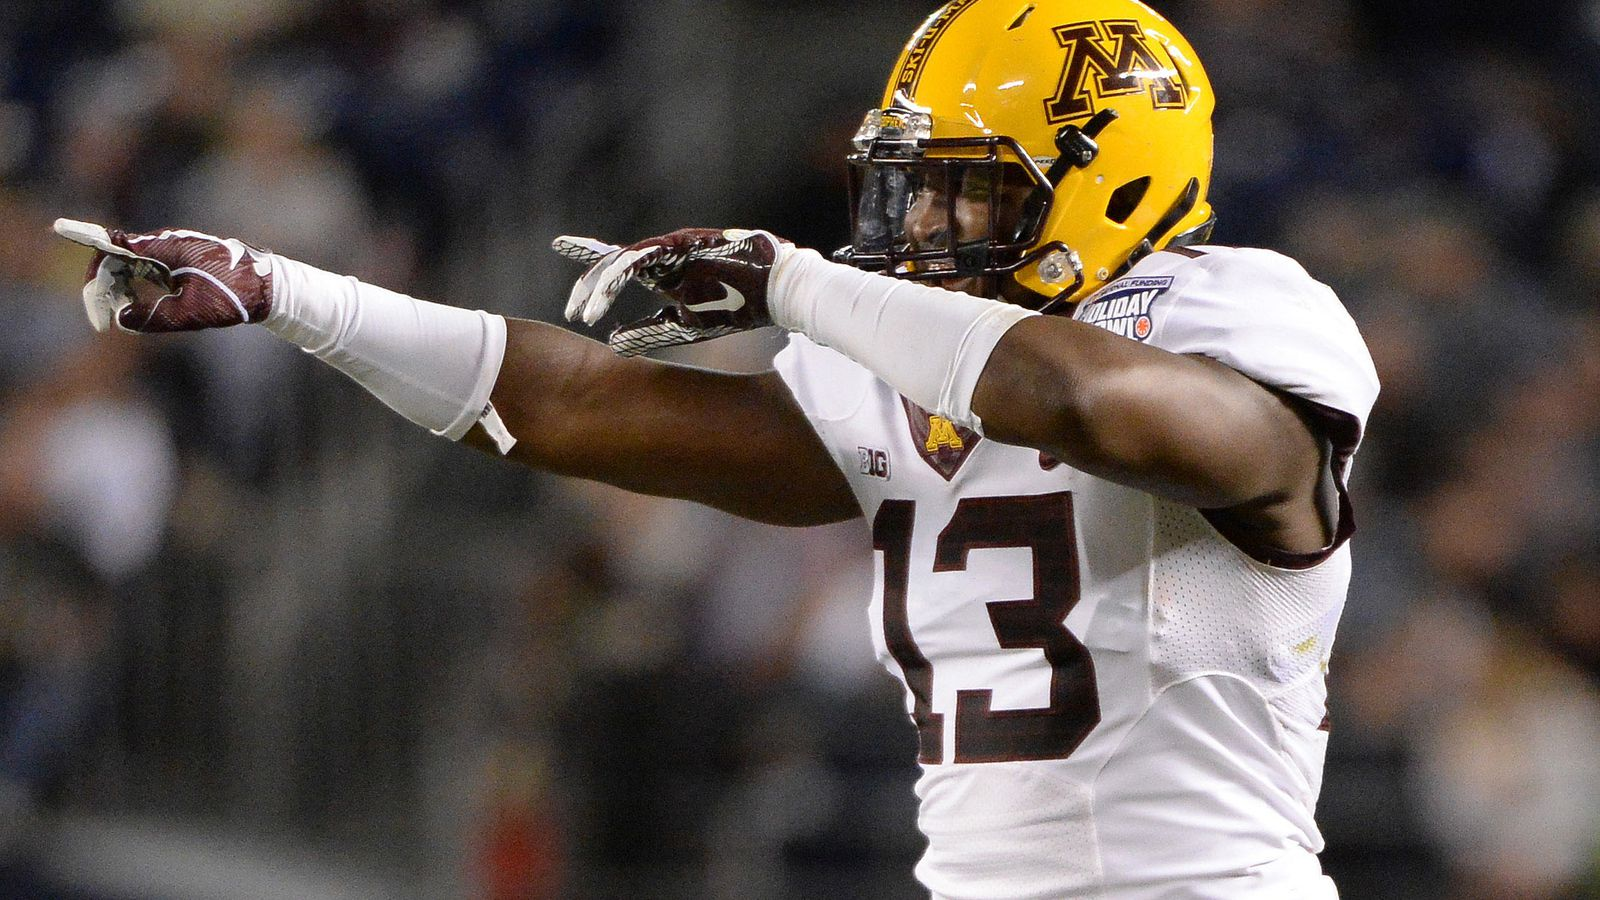 gophers gob top 5 - photo #23